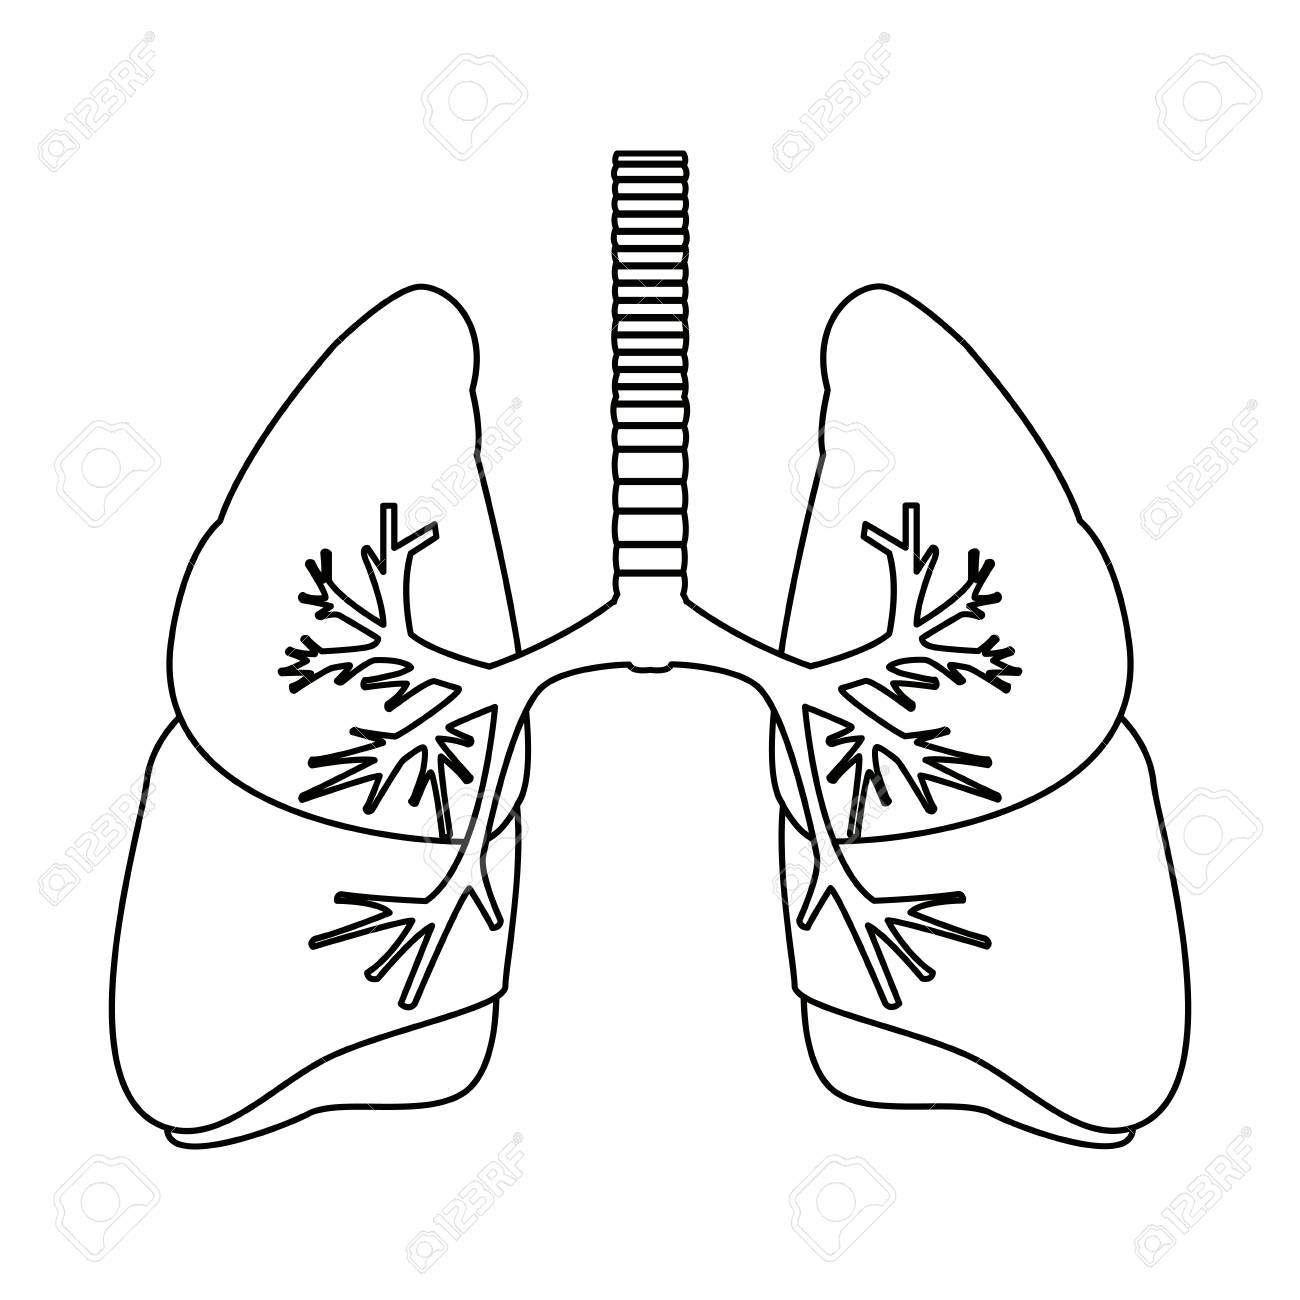 Human lungs anatomy medical science vector illustration royalty human lungs anatomy medical science vector illustration stock vector 82947115 ccuart Choice Image